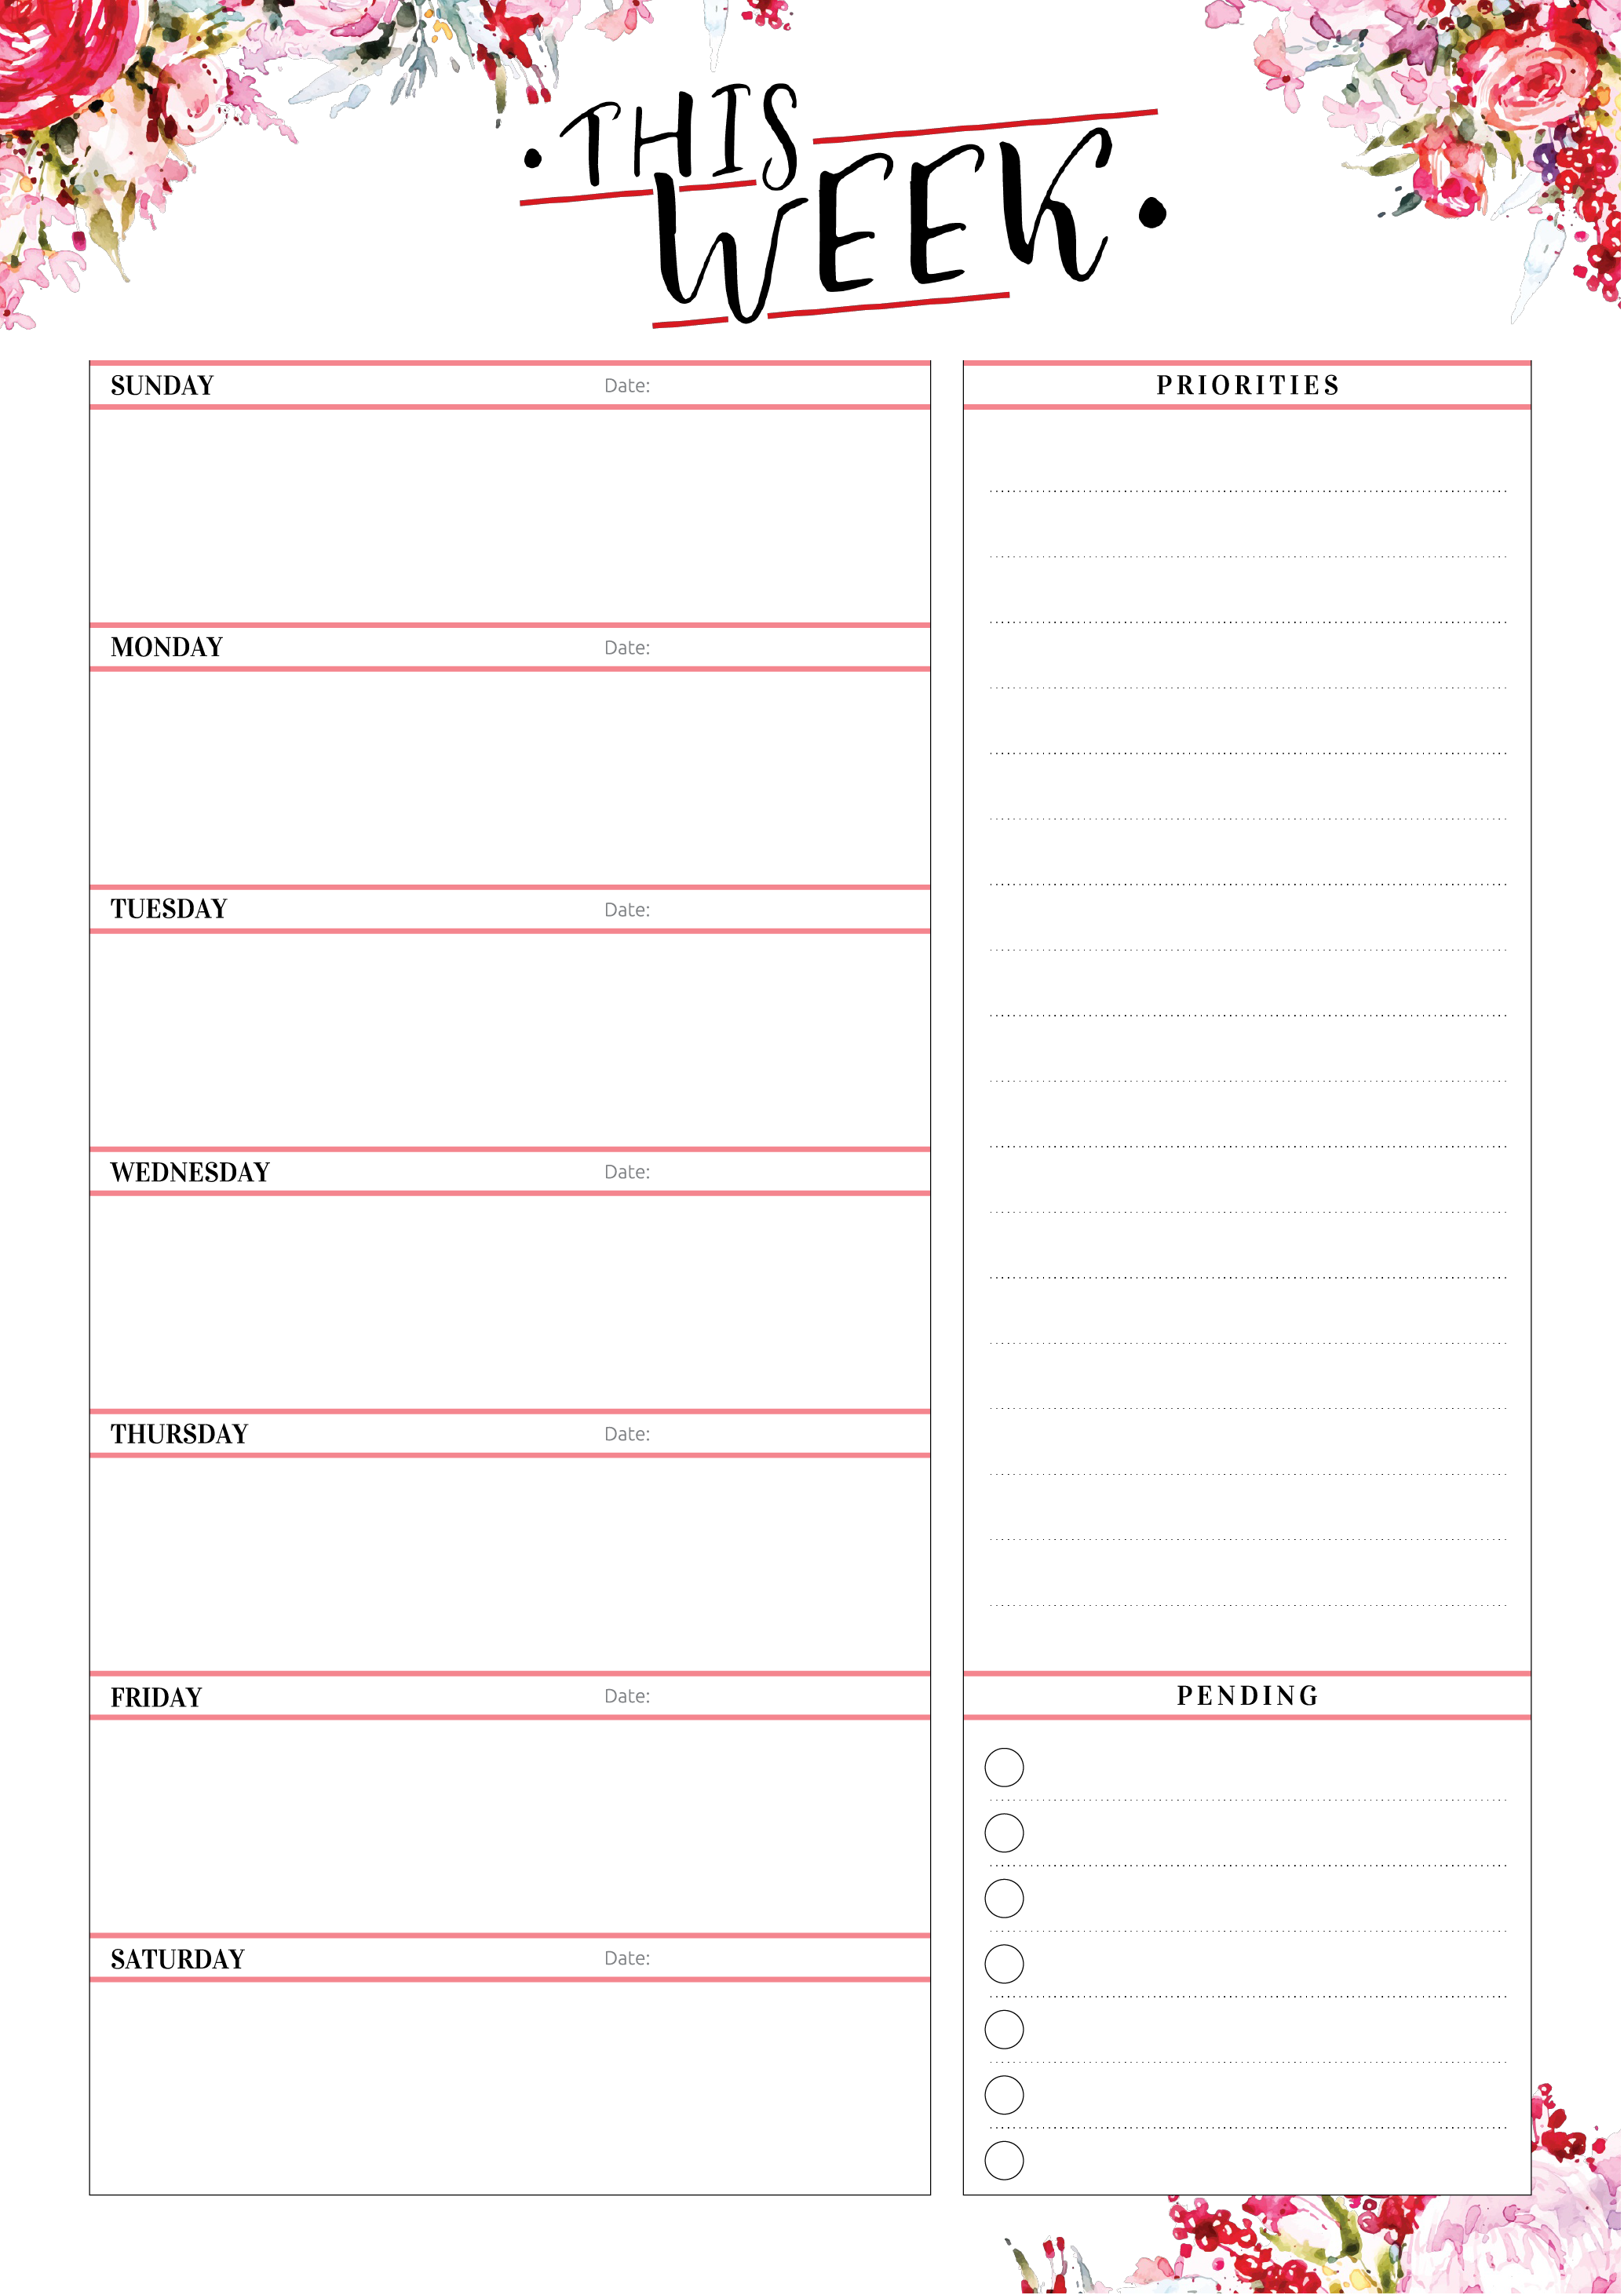 Weekly Planner With Priorities